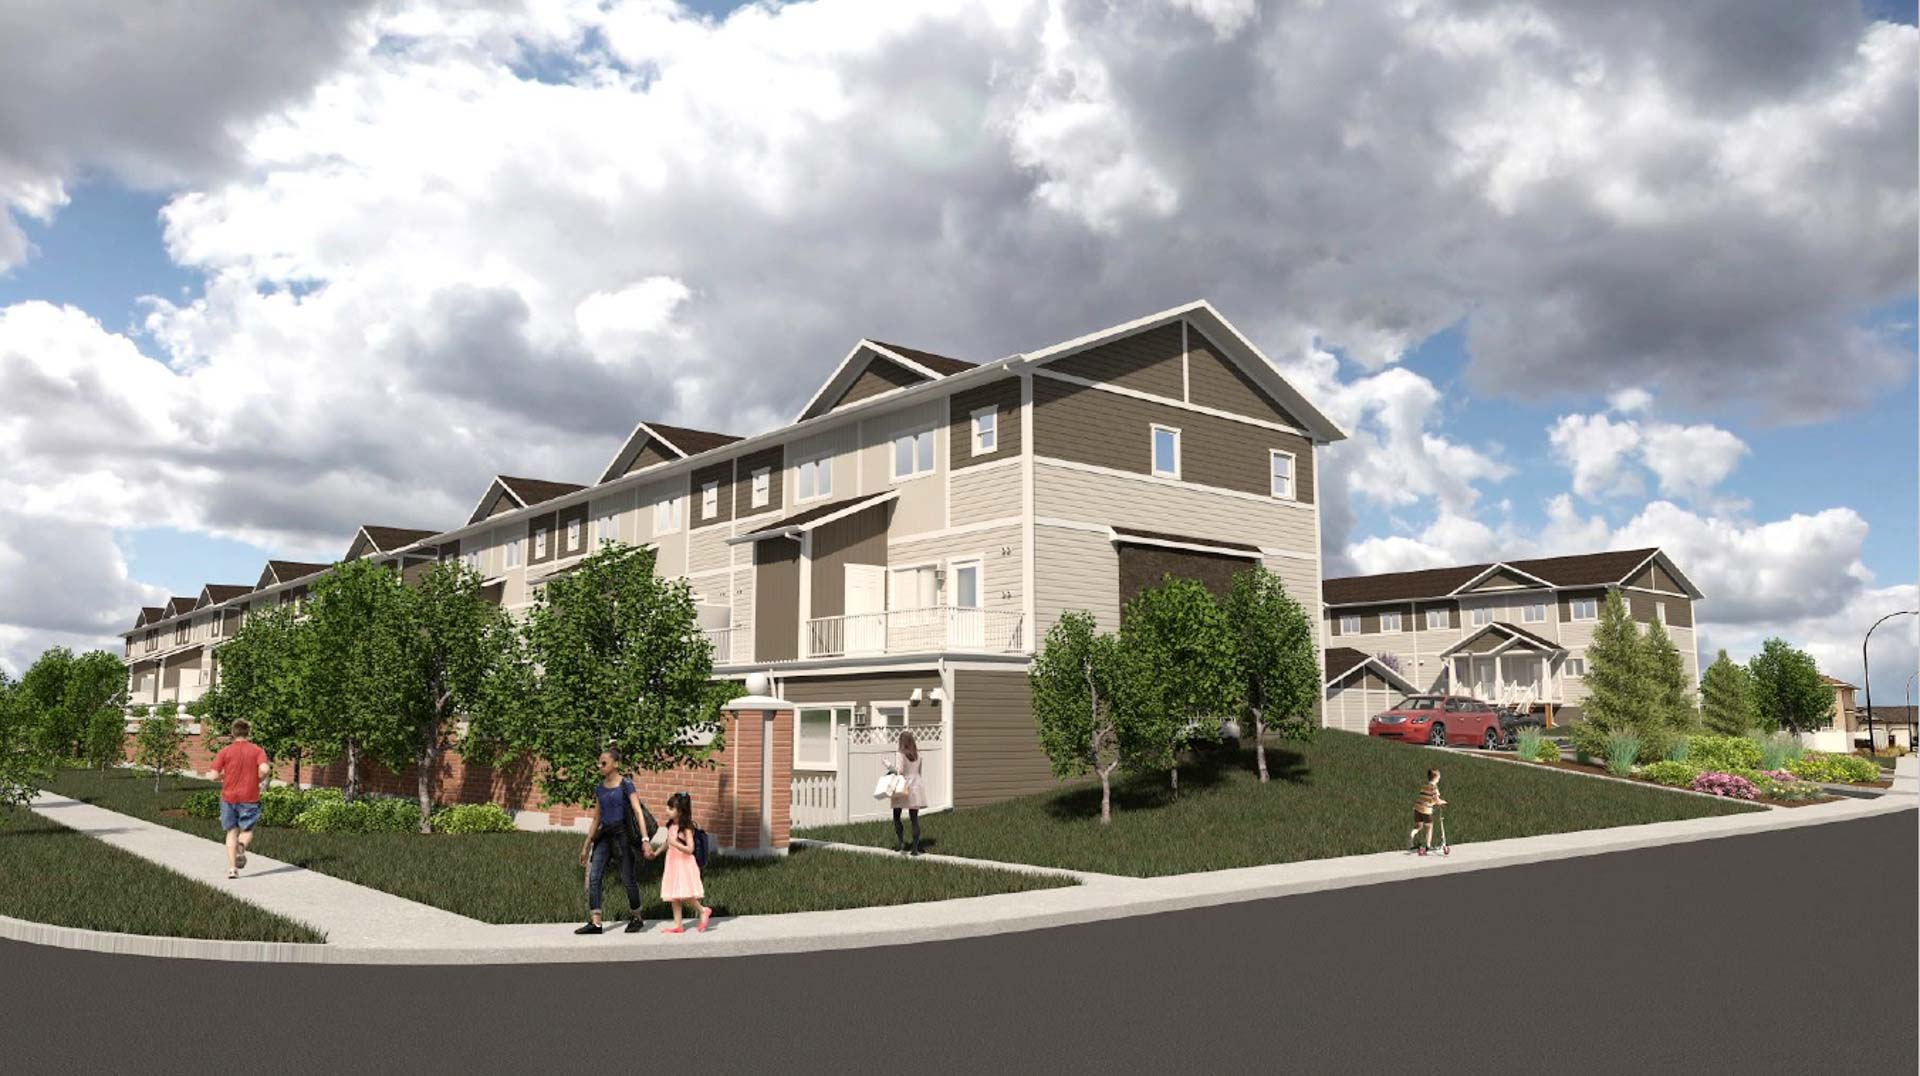 A rendering of Willowview Heights townhouses in Saskatoon, Sask.